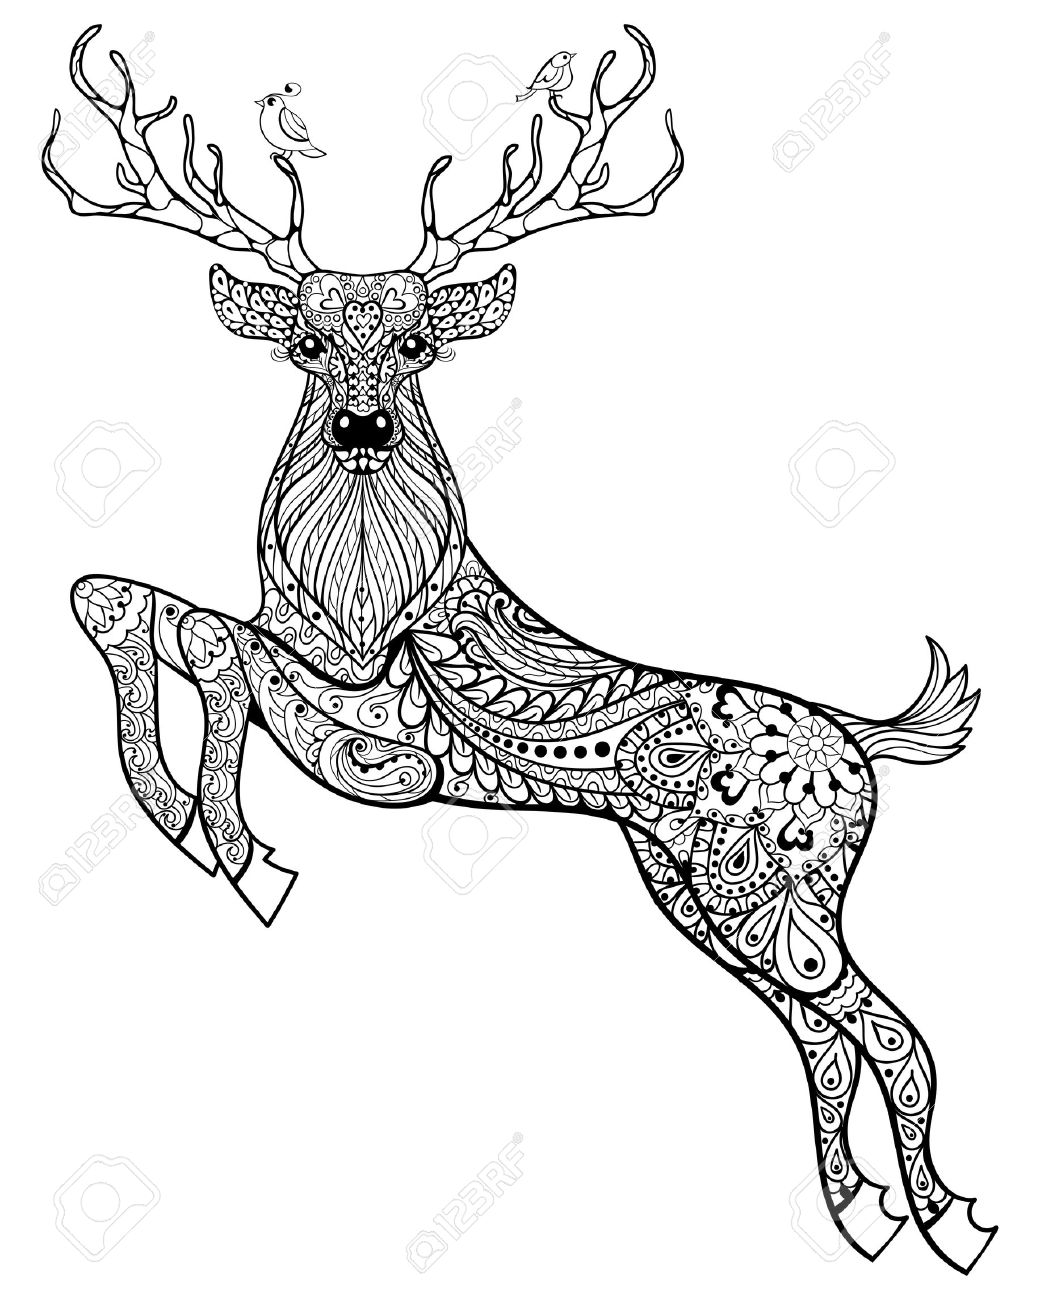 Hand drawn magic horned deer with birds for adult anti stress Coloring Page with high details isolated on white background, illustration in zentangle style. Vector monochrome sketch. Animal collection. Stock Vector - 51458786